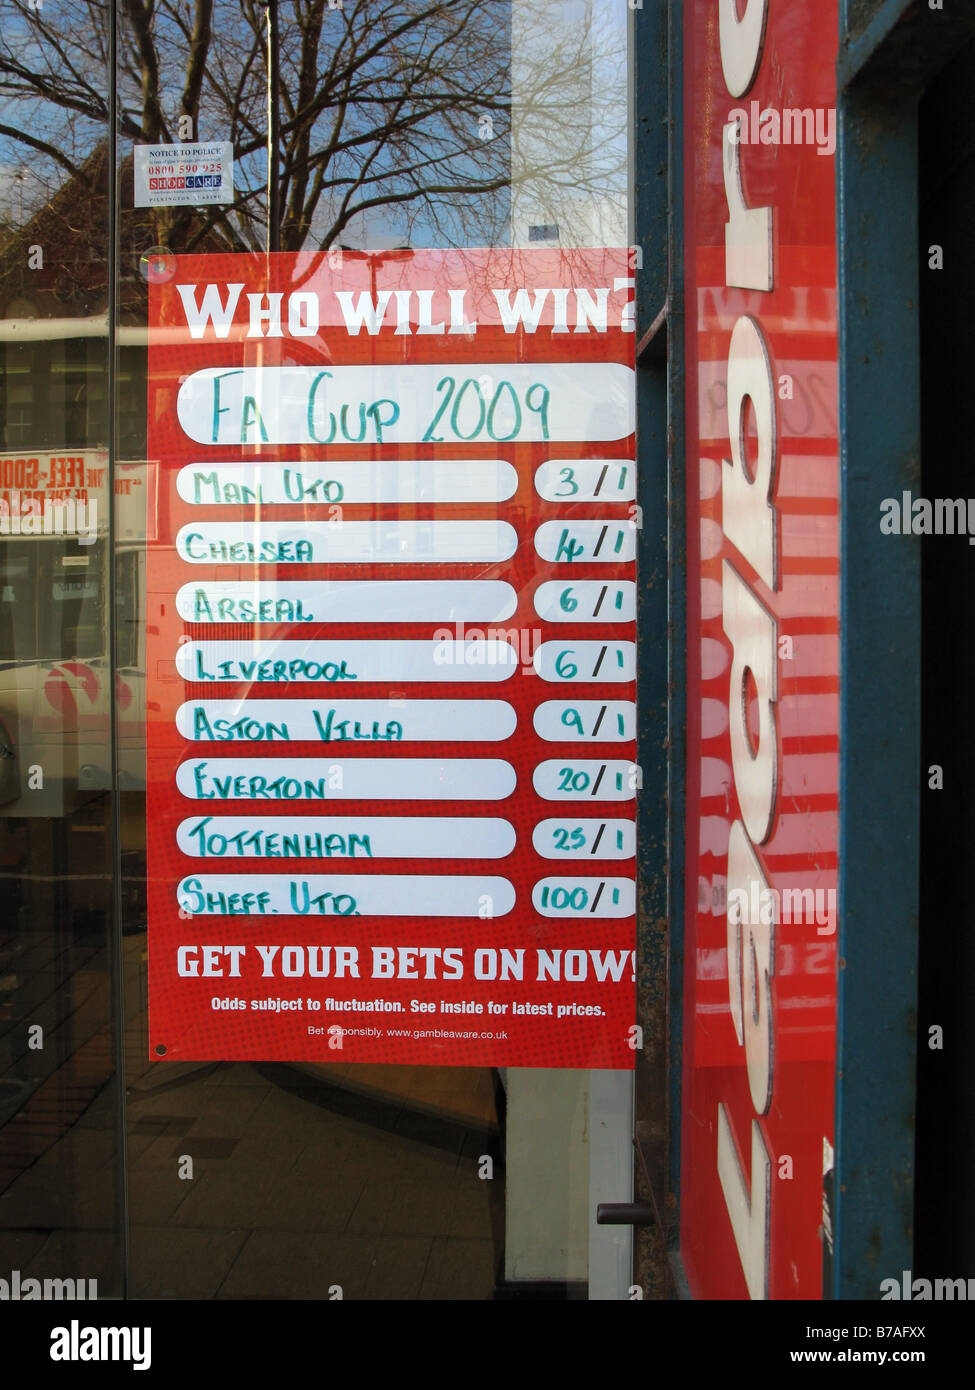 Betting Shop Odds - Stock Image